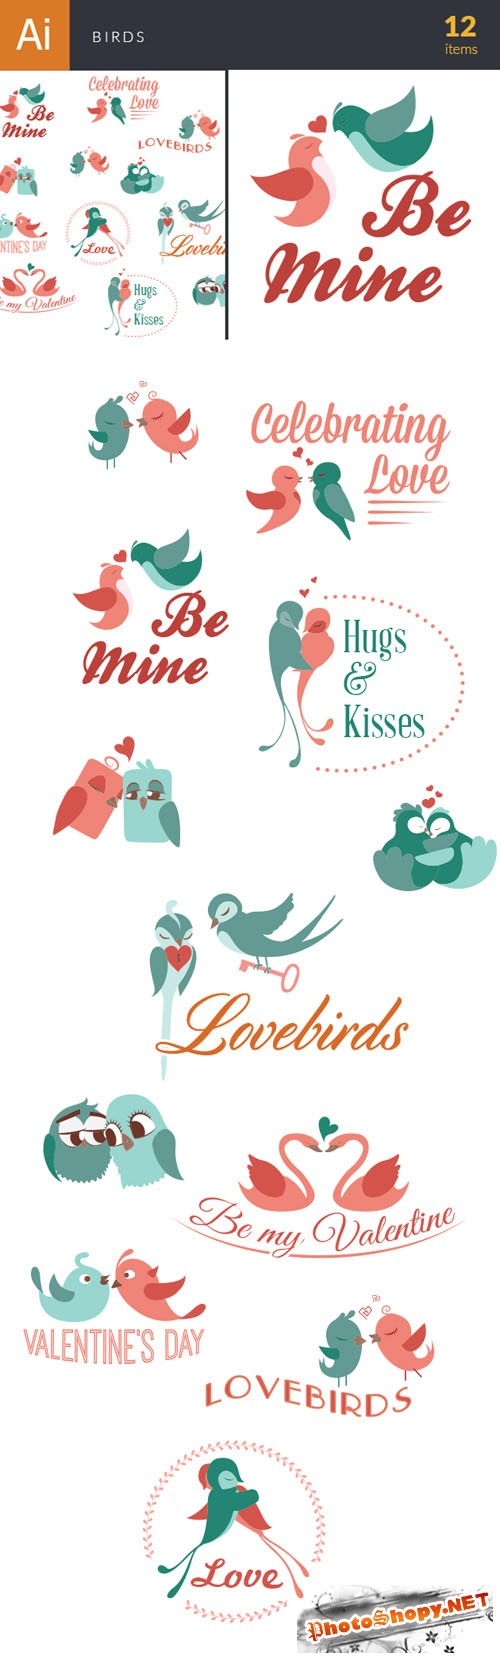 Birds Celebrating Love Vector Elements Set